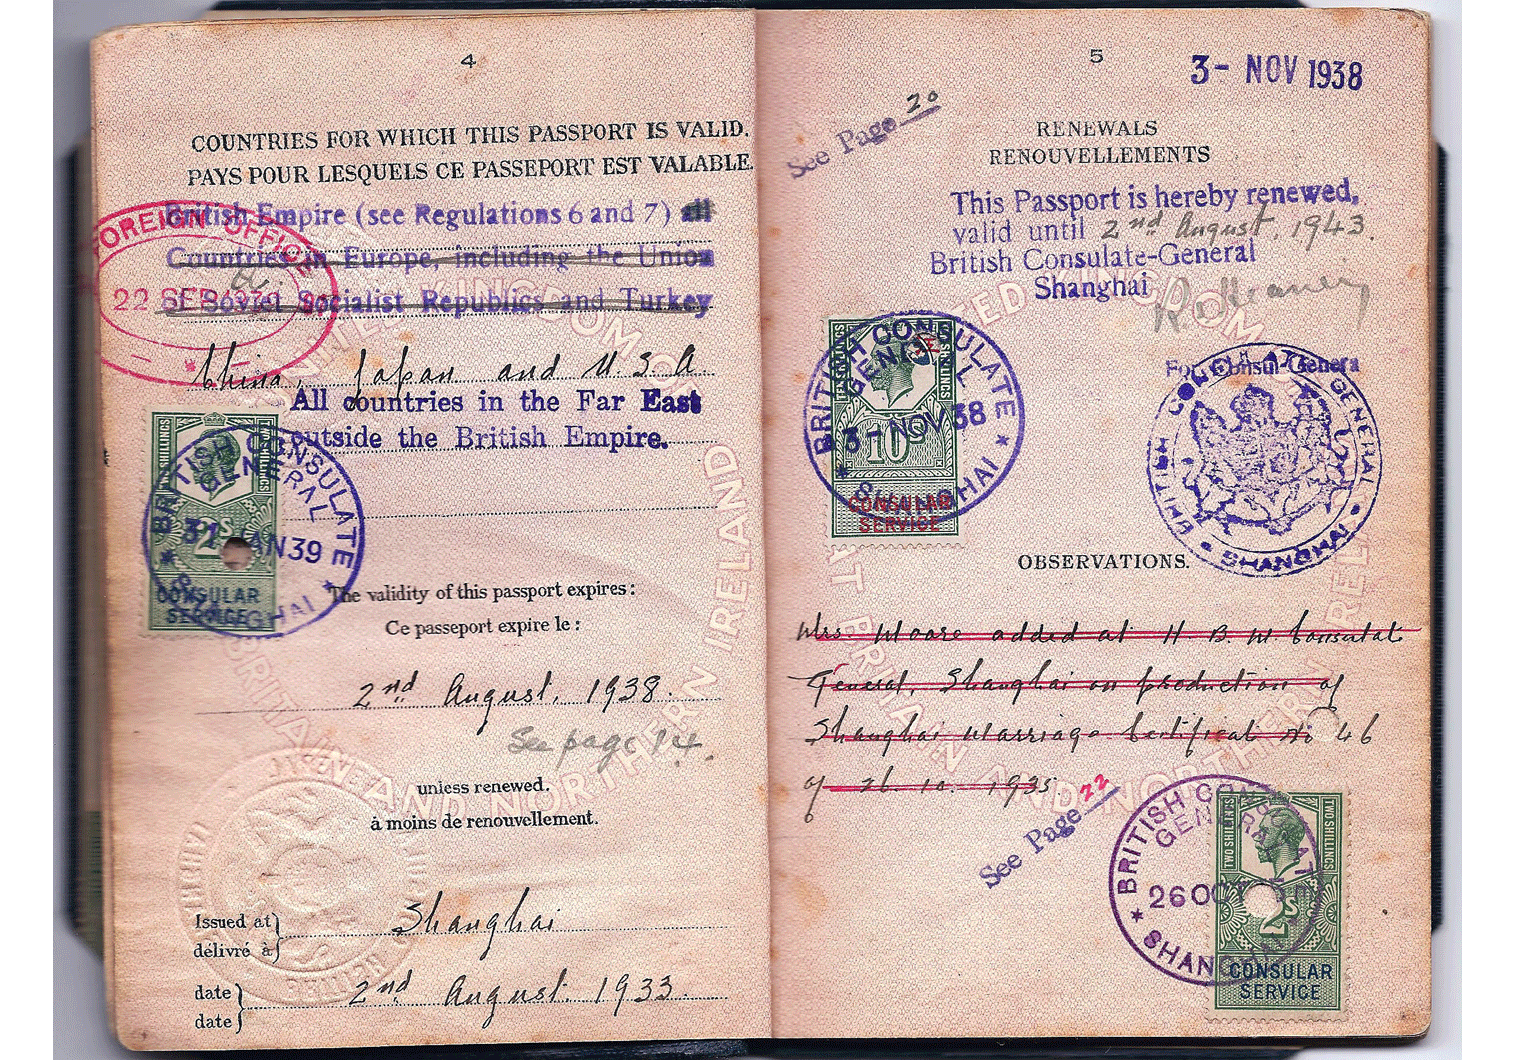 WW2 passport